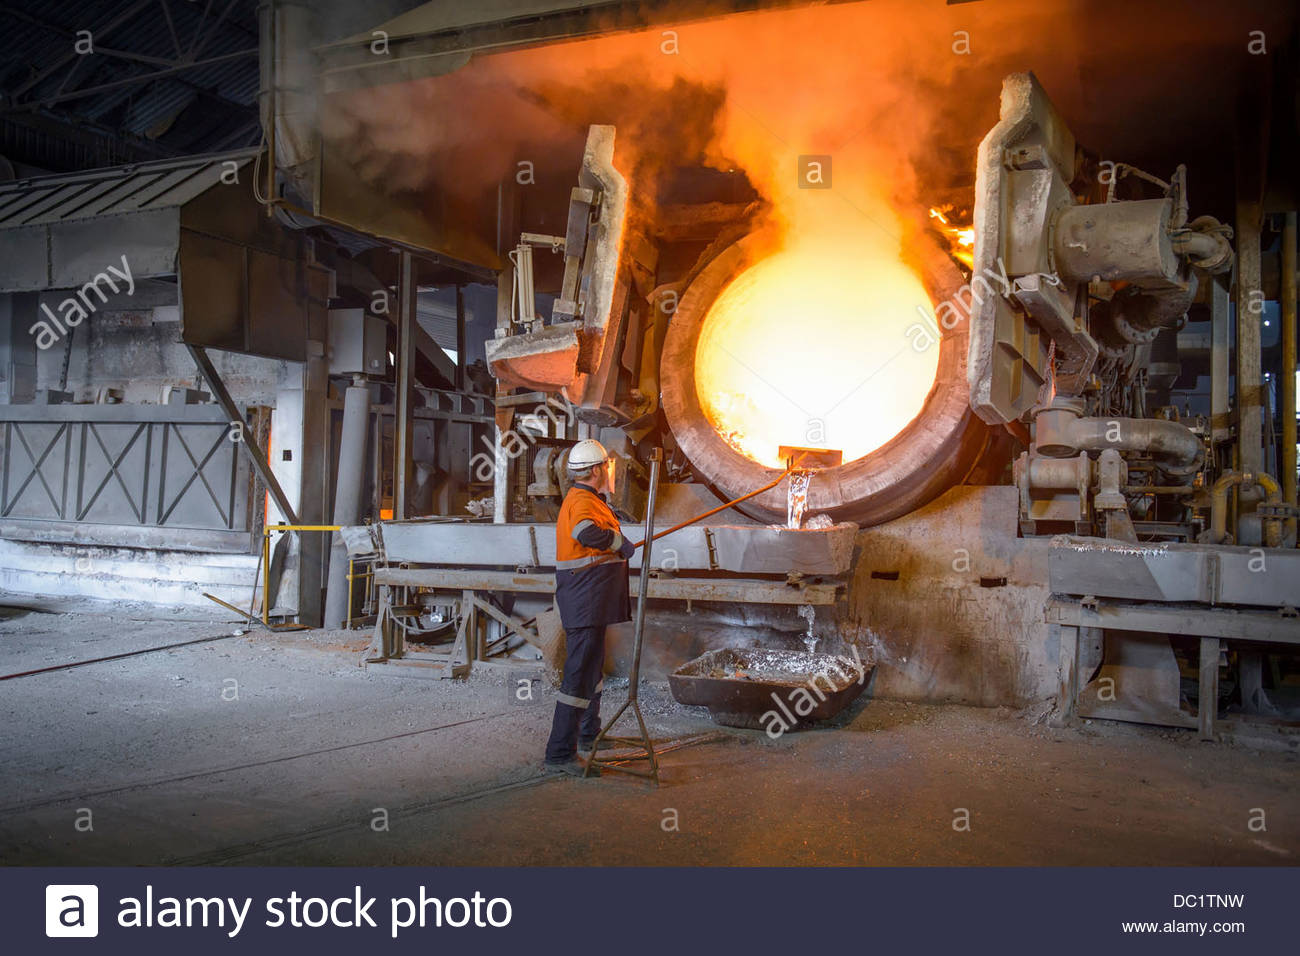 worker-raking-liquid-aluminum-from-furnace-at-recycling-plant-DC1TNW